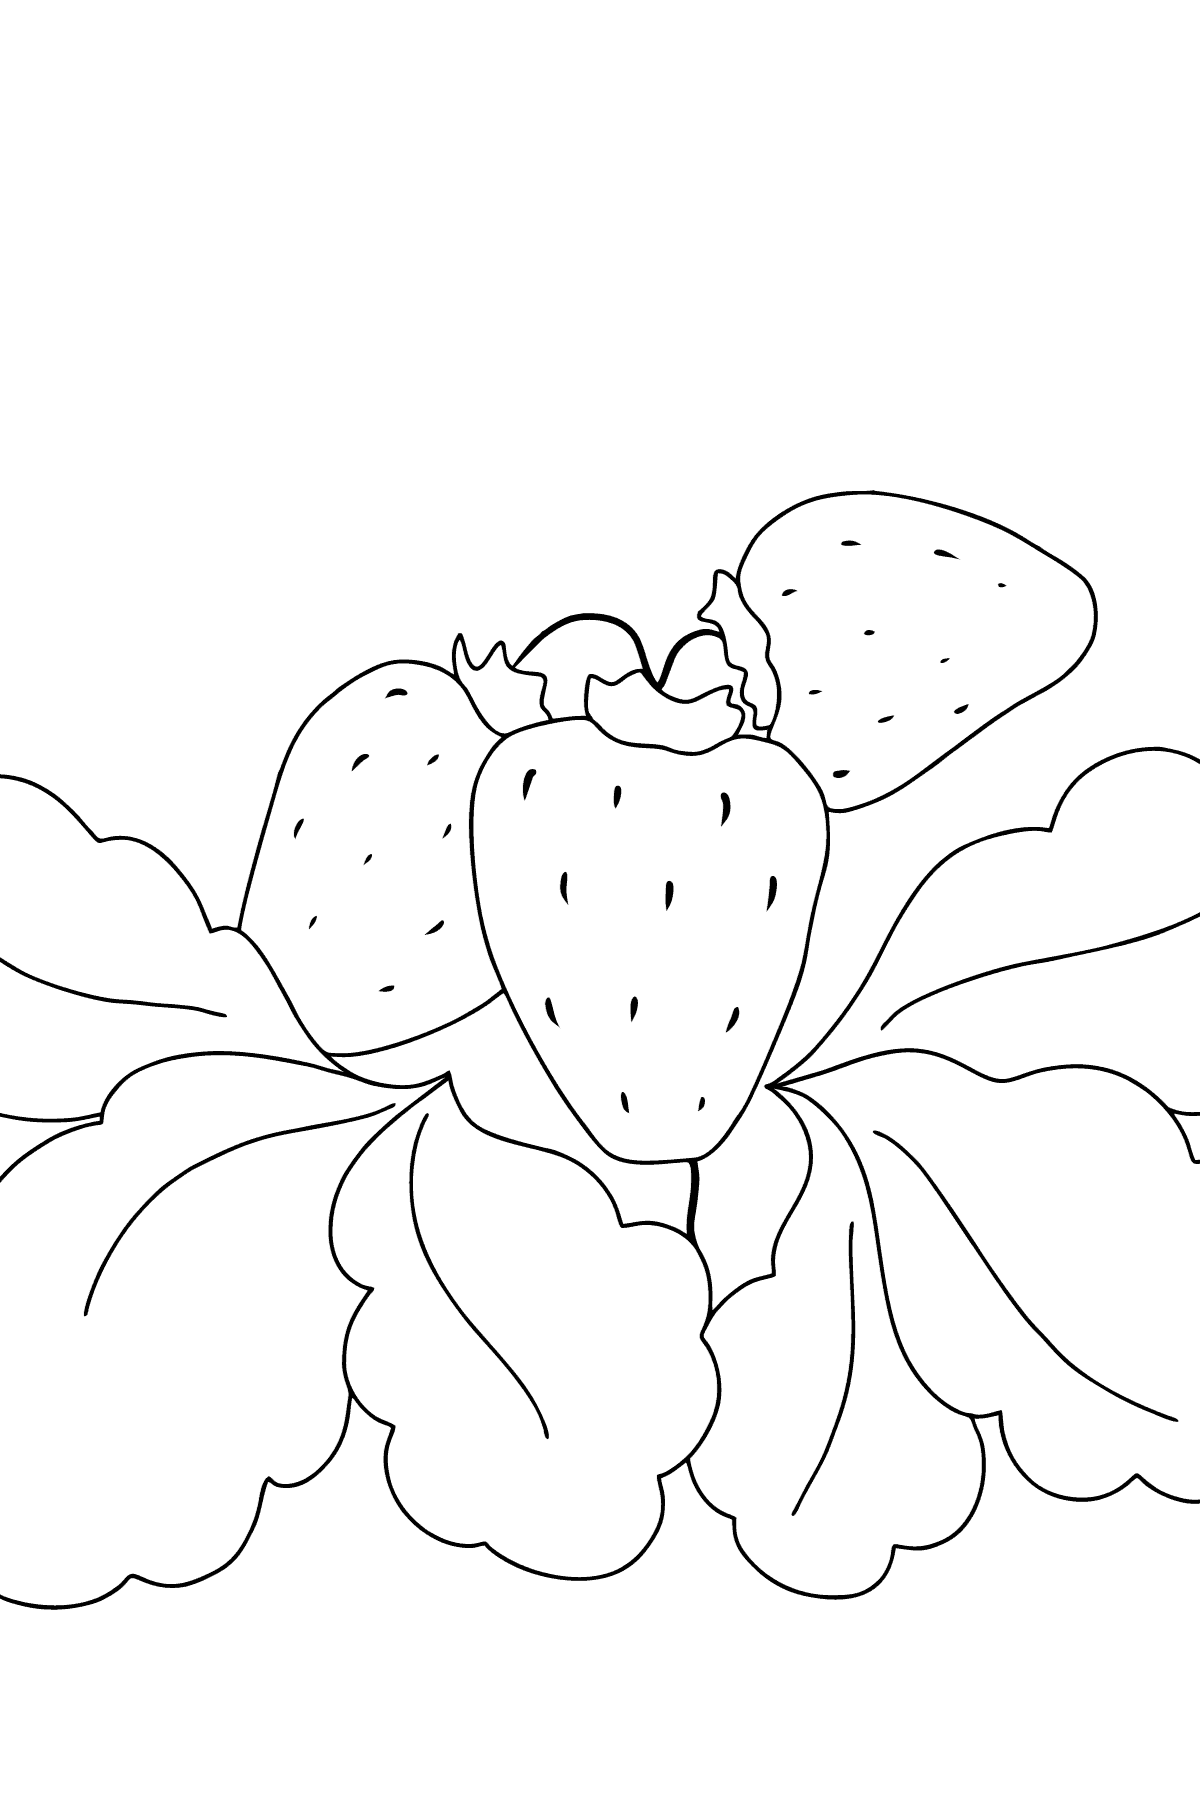 Coloring Page - Summer and Strawberries - Coloring Pages for Kids